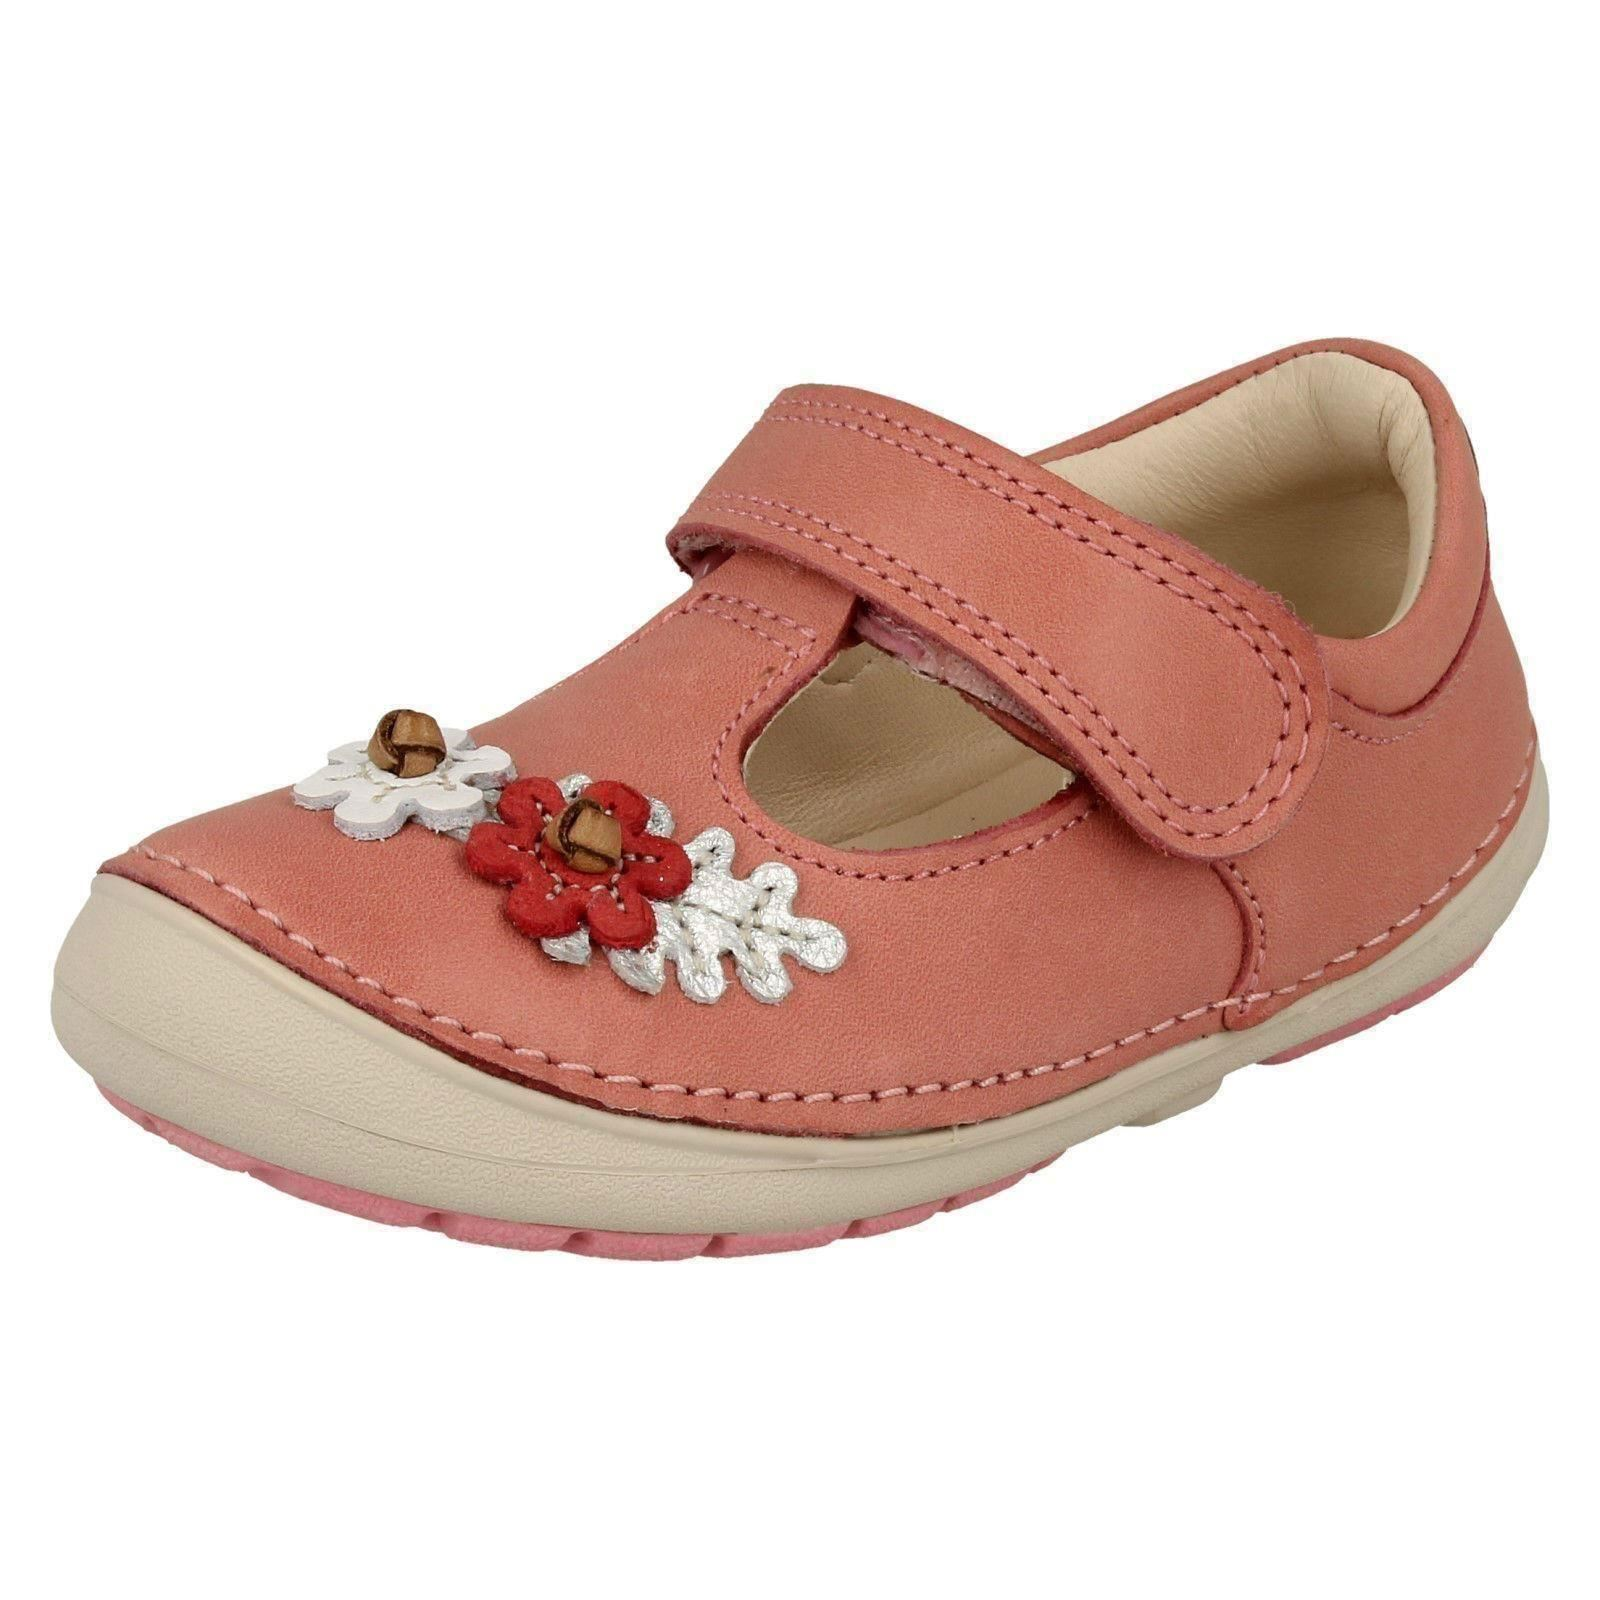 Clarks Girls First Walking Shoes Softly Blossom